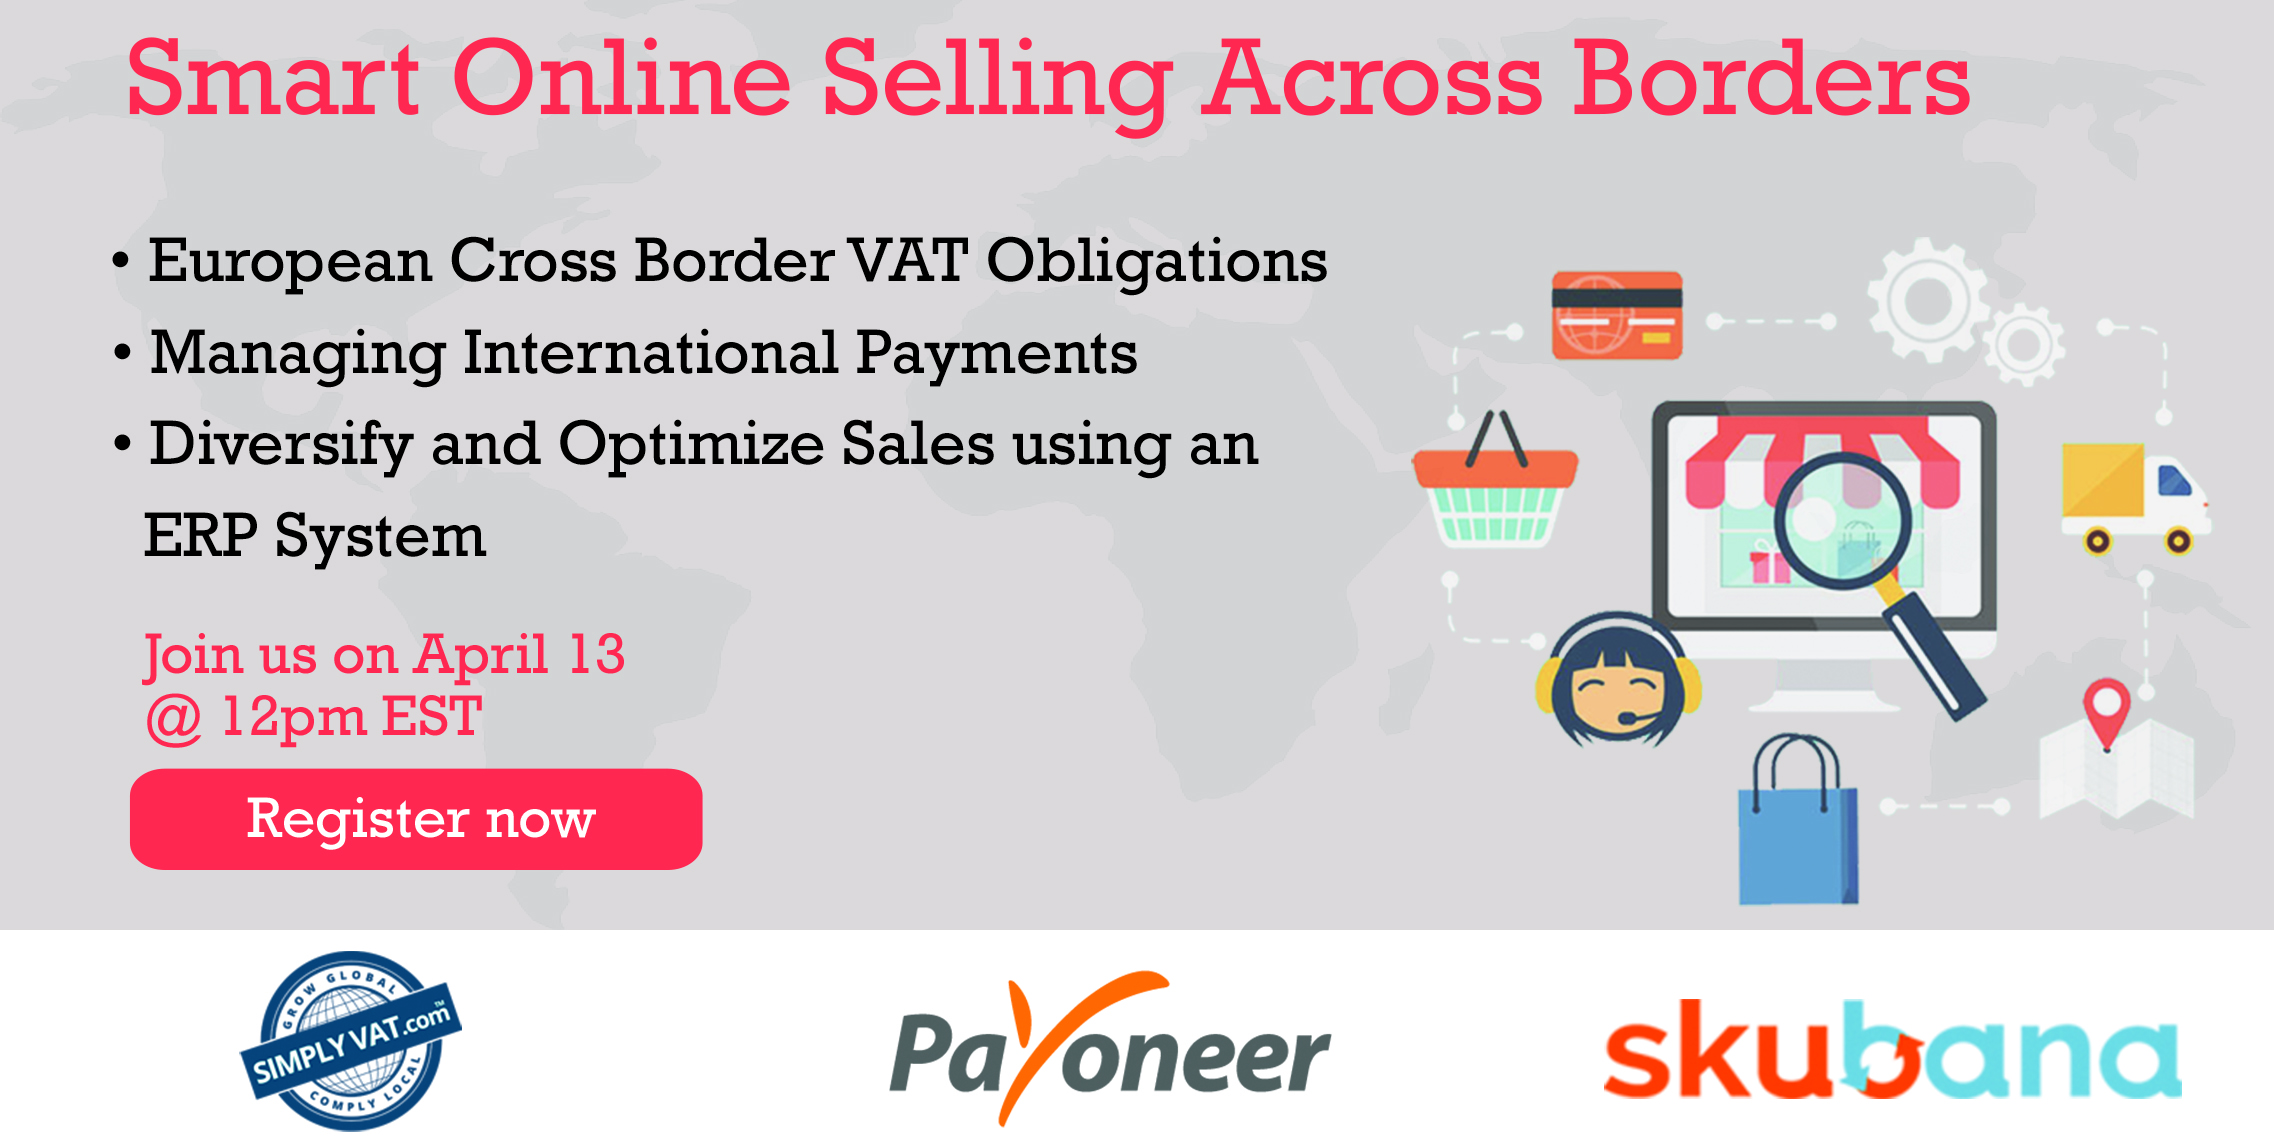 Selling across borders obligation